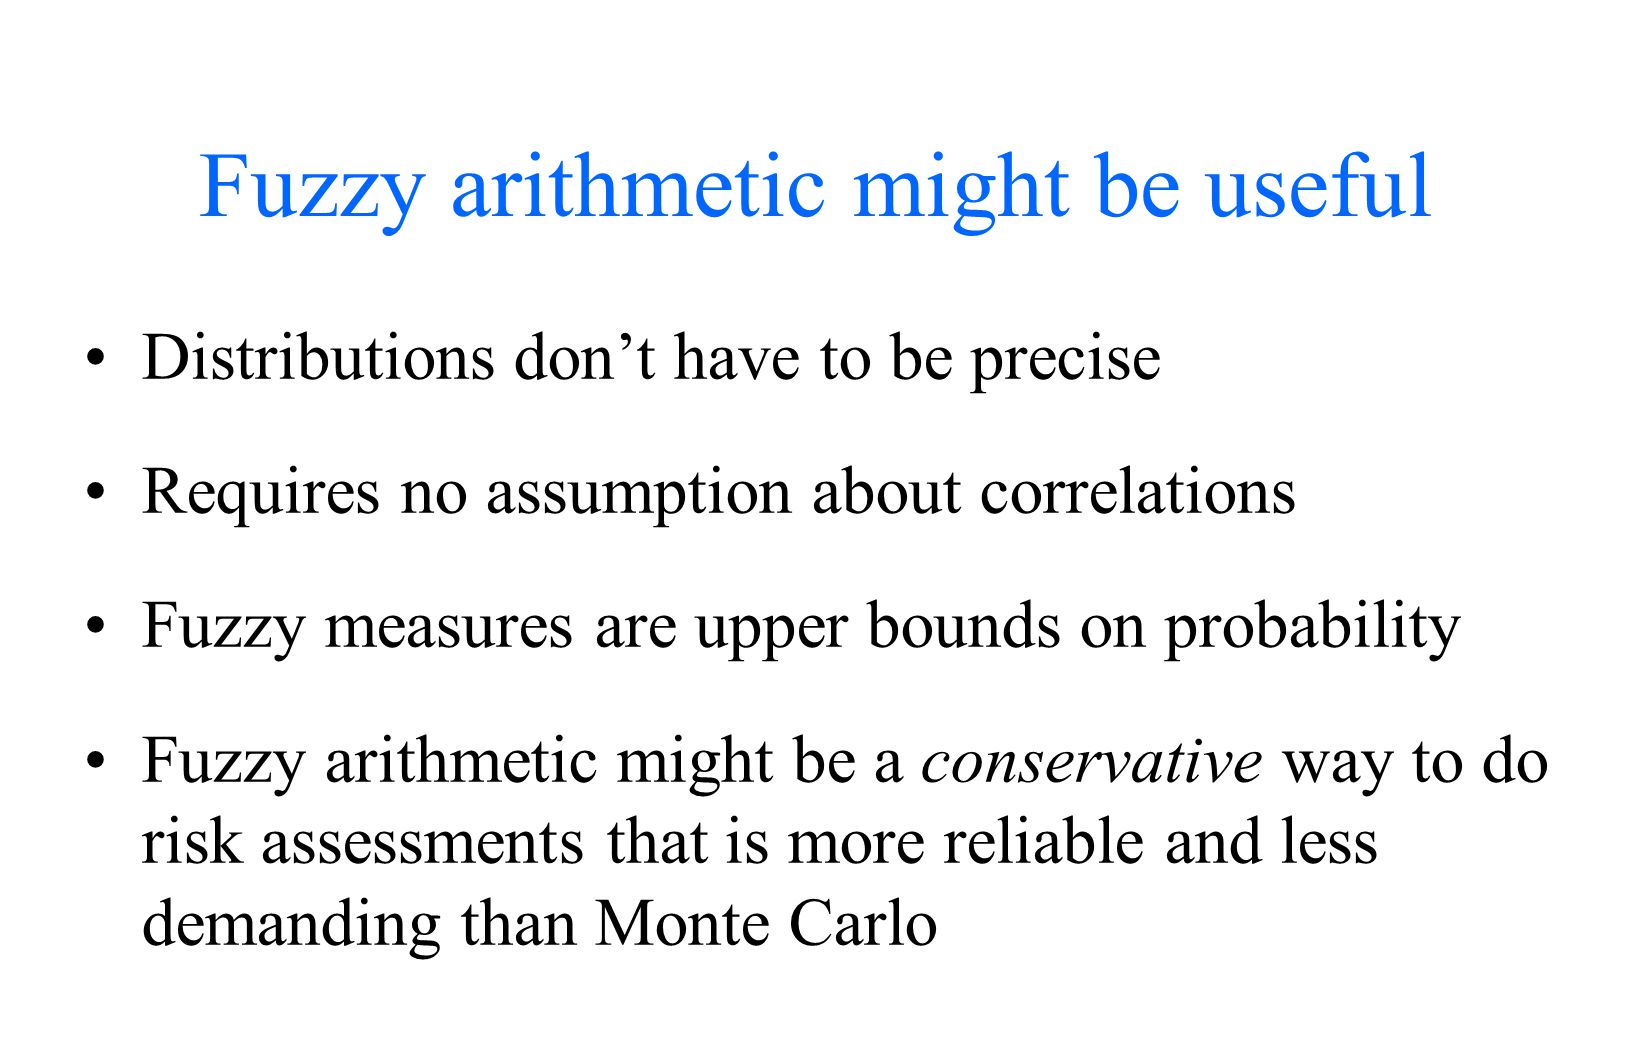 Fuzzy arithmetic might be useful Distributions don't have to be precise Requires no assumption about correlations Fuzzy measures are upper bounds on probability Fuzzy arithmetic might be a conservative way to do risk assessments that is more reliable and less demanding than Monte Carlo